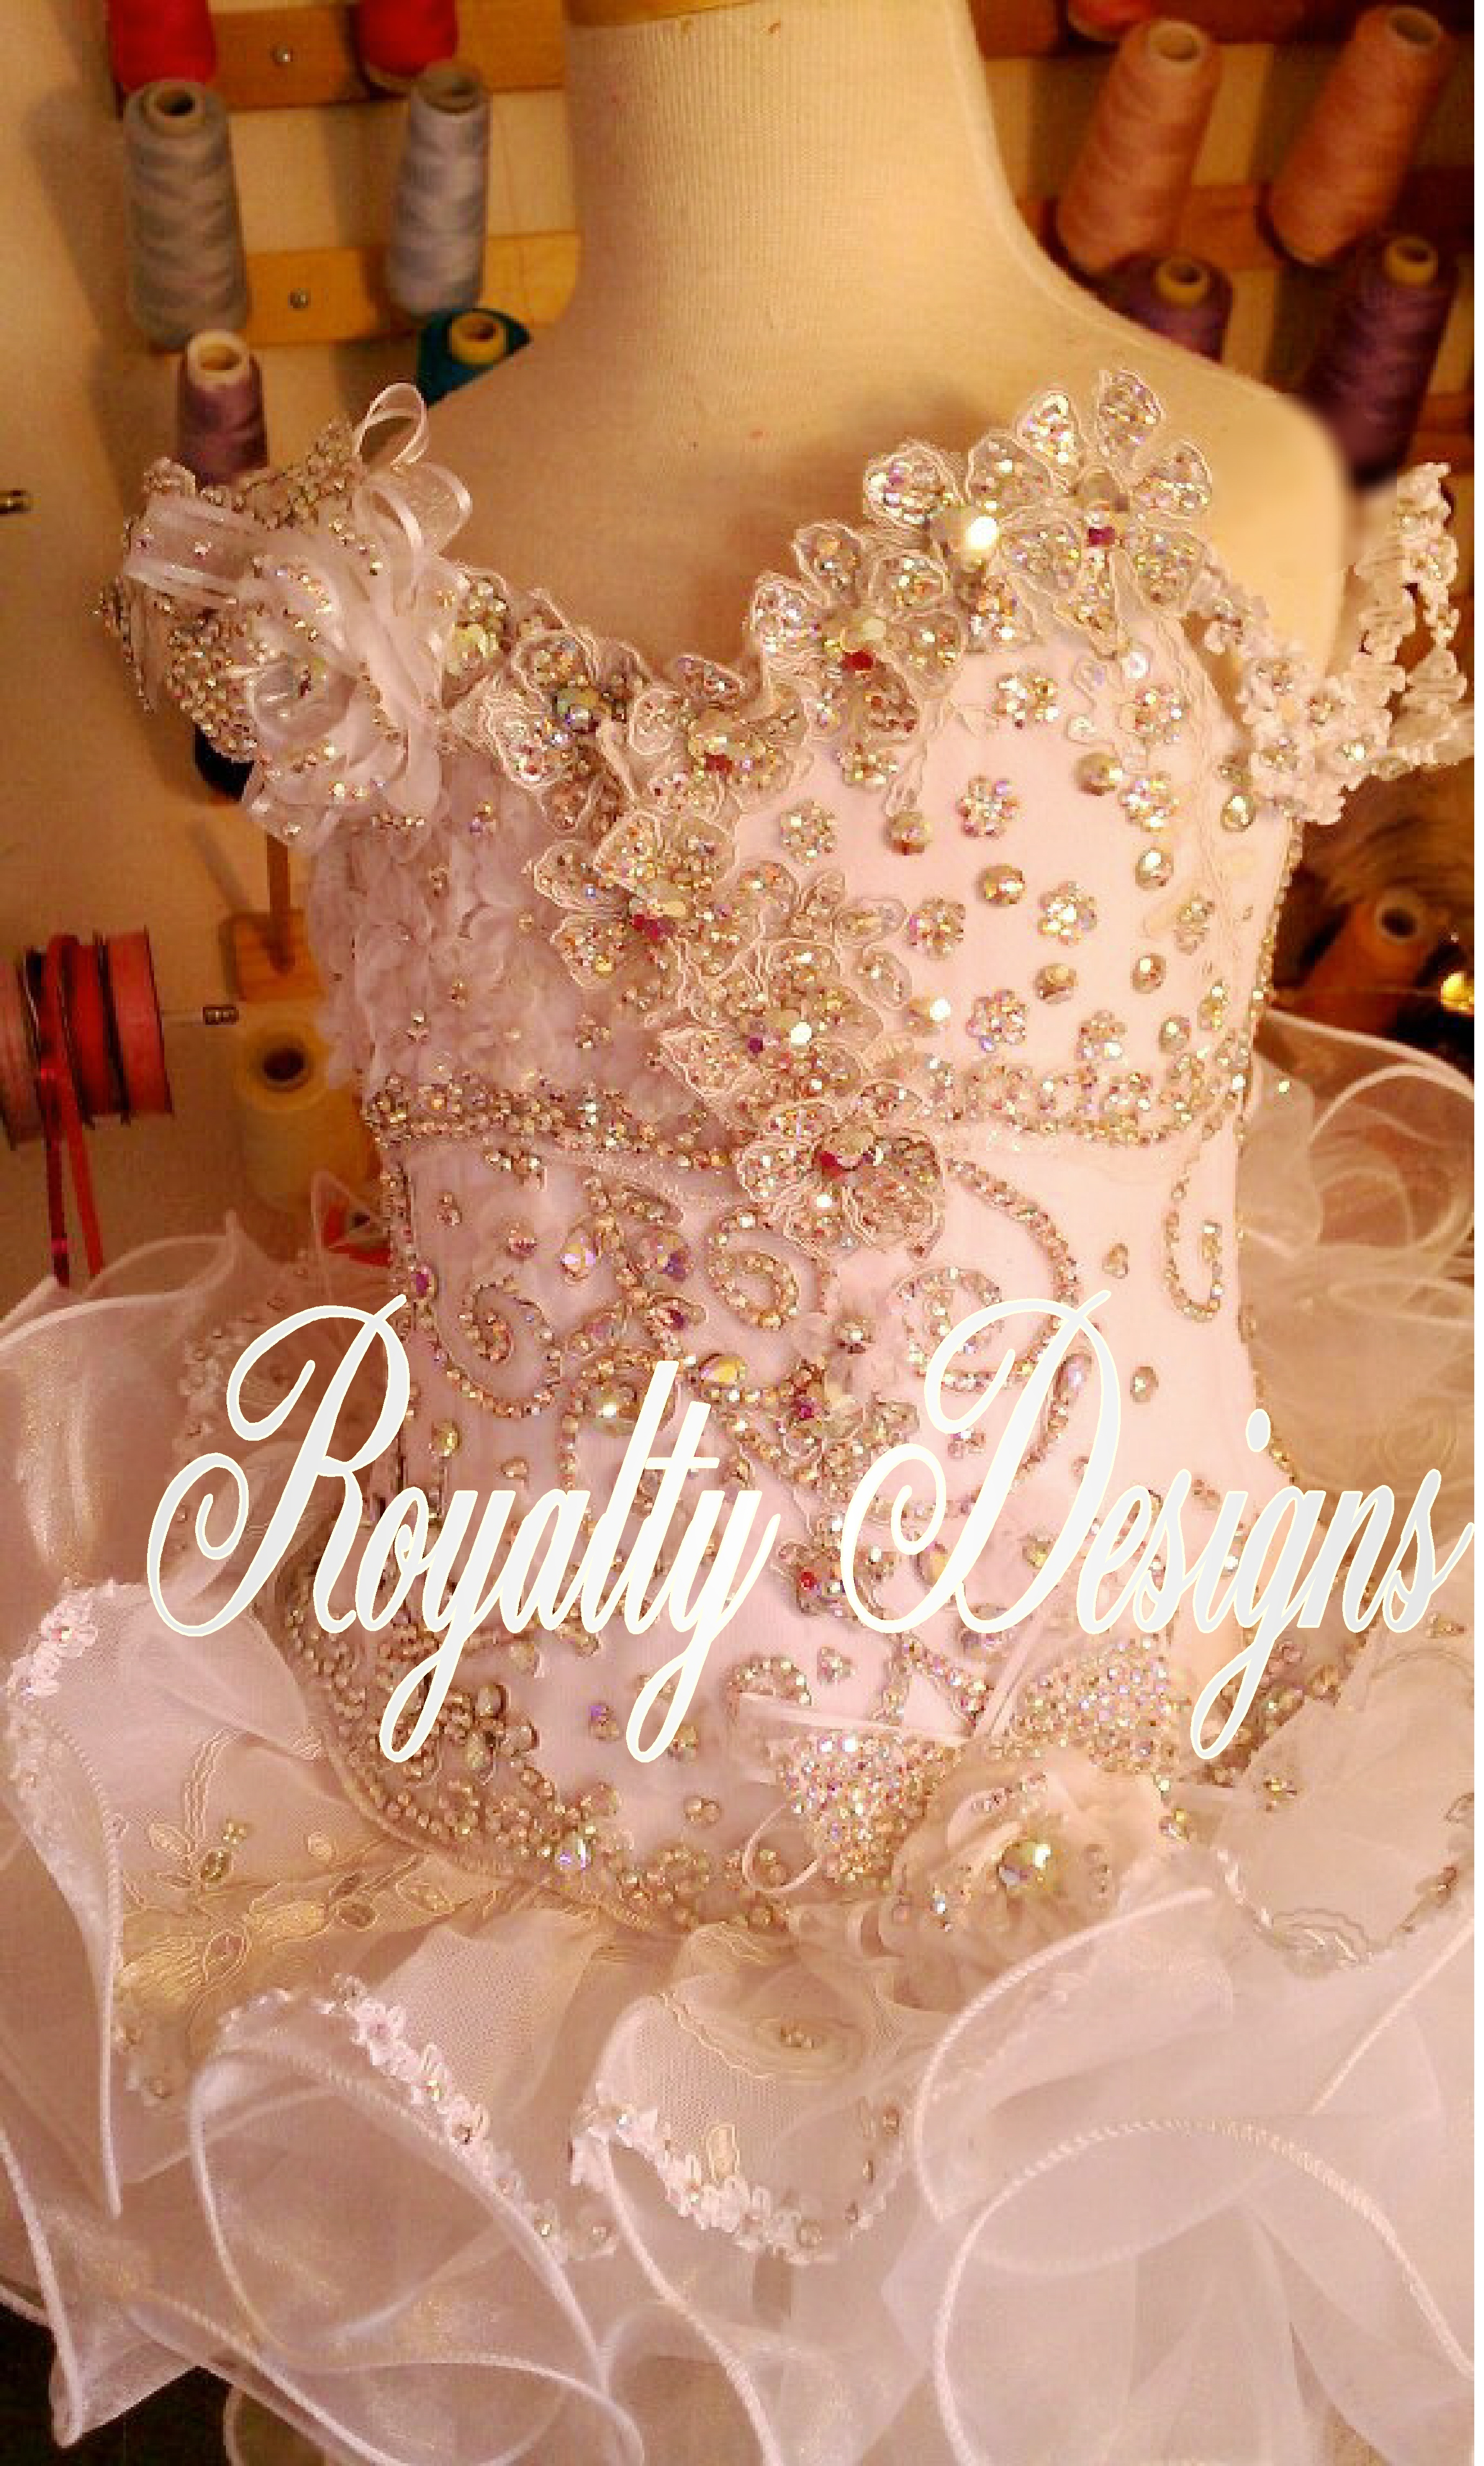 Glitz pageant dresses for rent - Poster2 Jpg